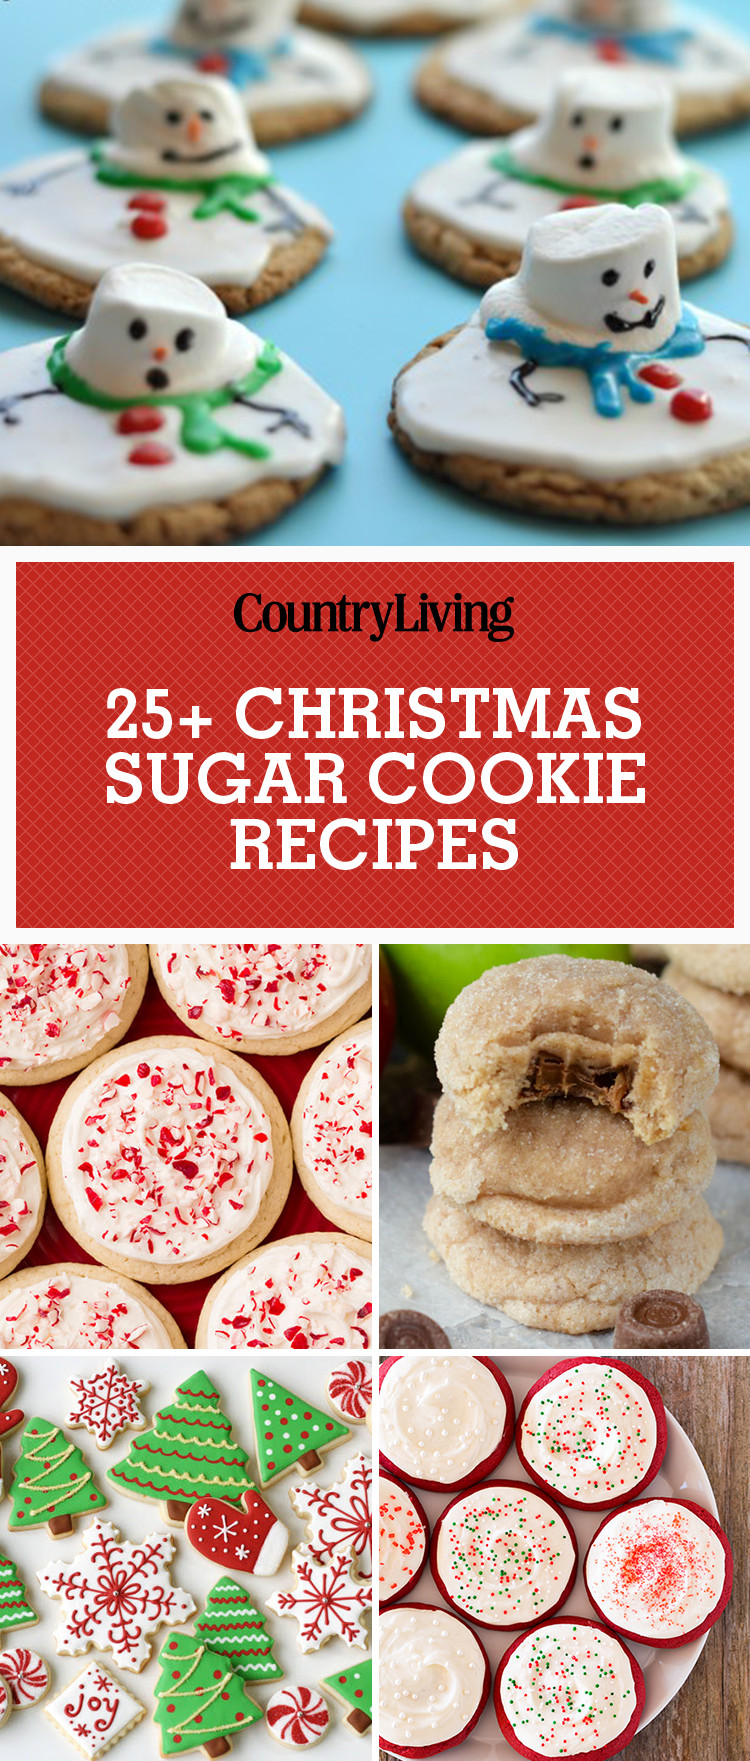 Recipes For Christmas Sugar Cookies  25 Easy Christmas Sugar Cookies Recipes & Decorating